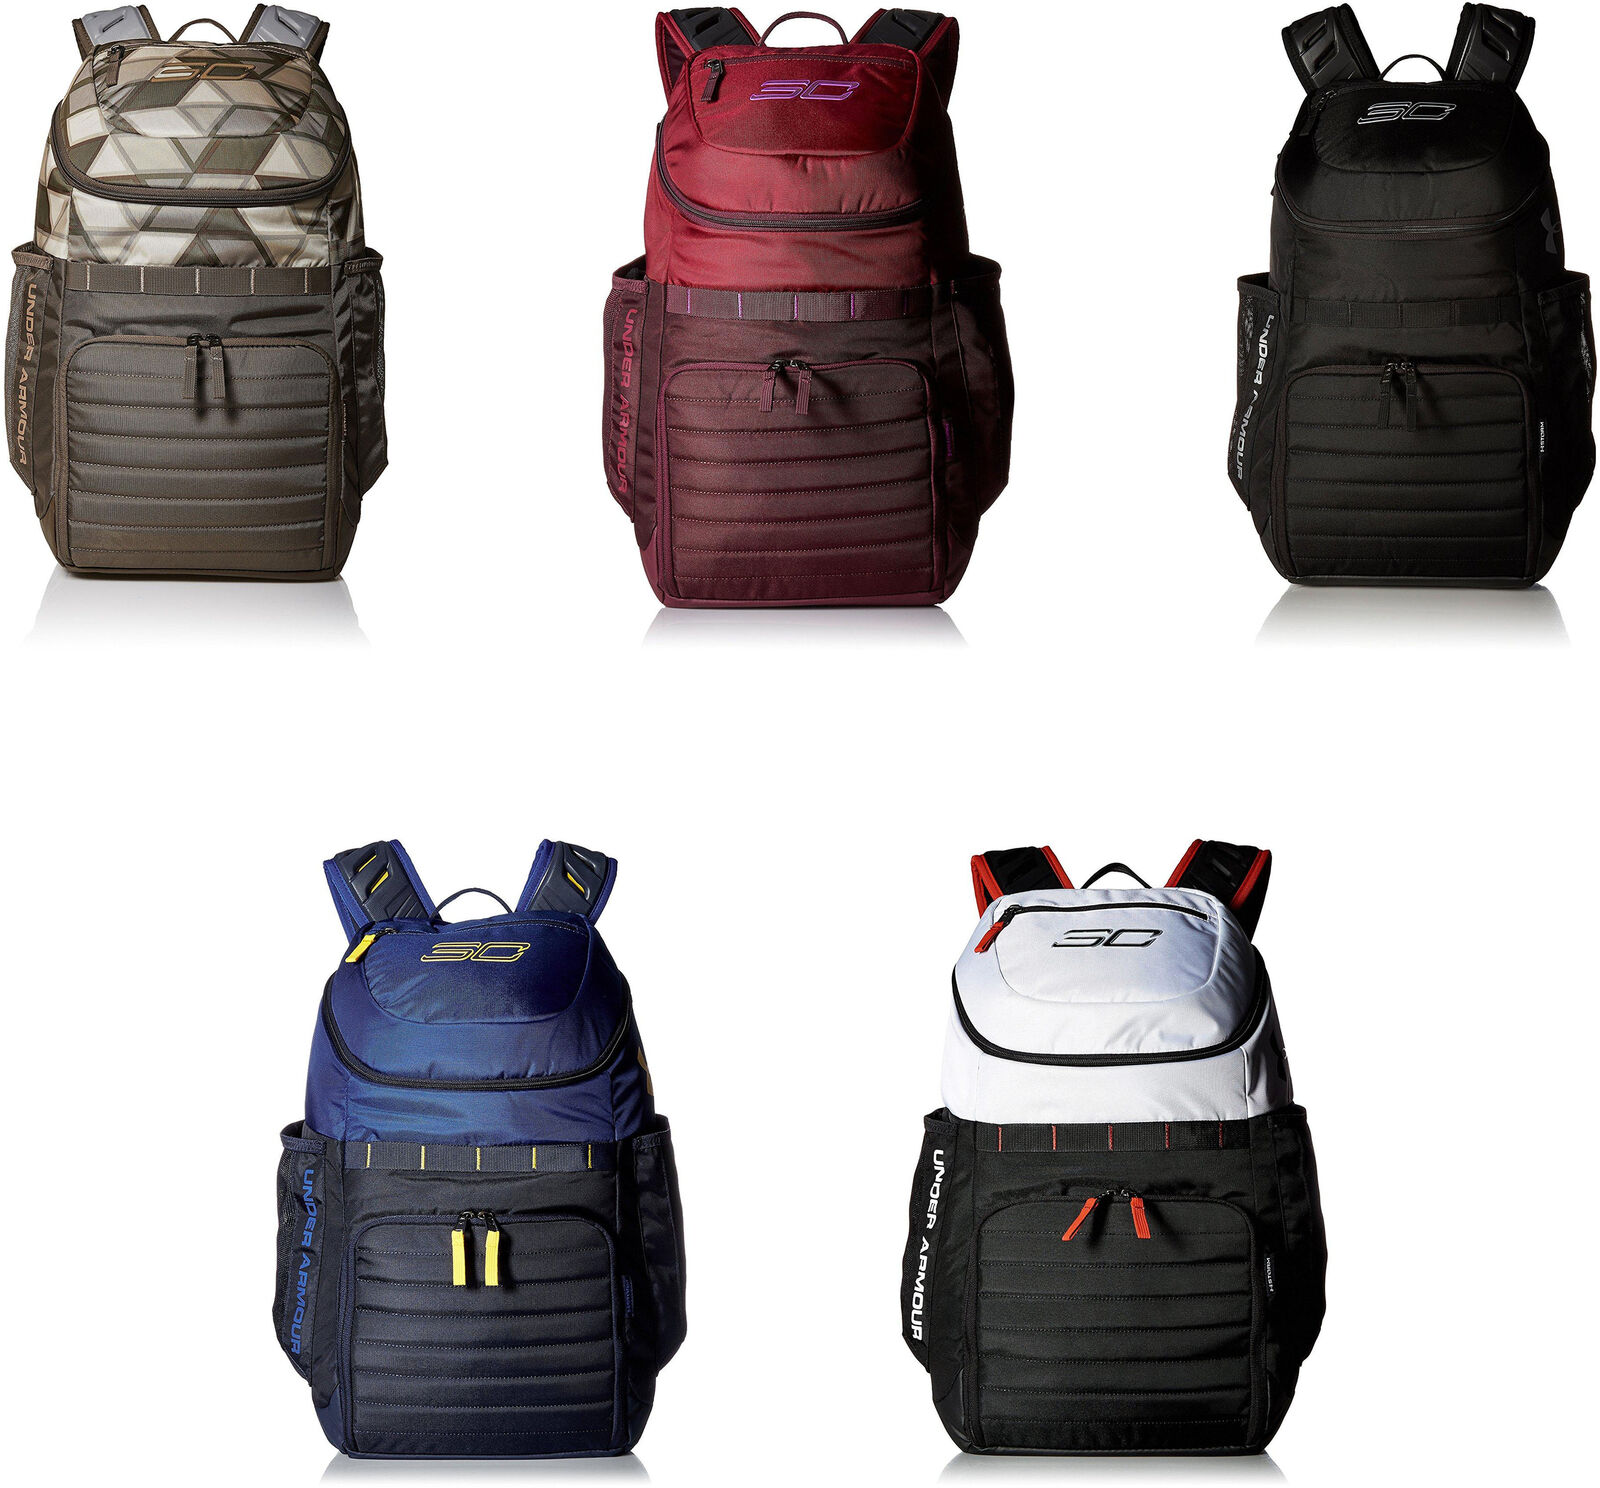 5a55ef743 Under Armour Unisex SC30 Undeniable Backpack, 5 Colors | eBay